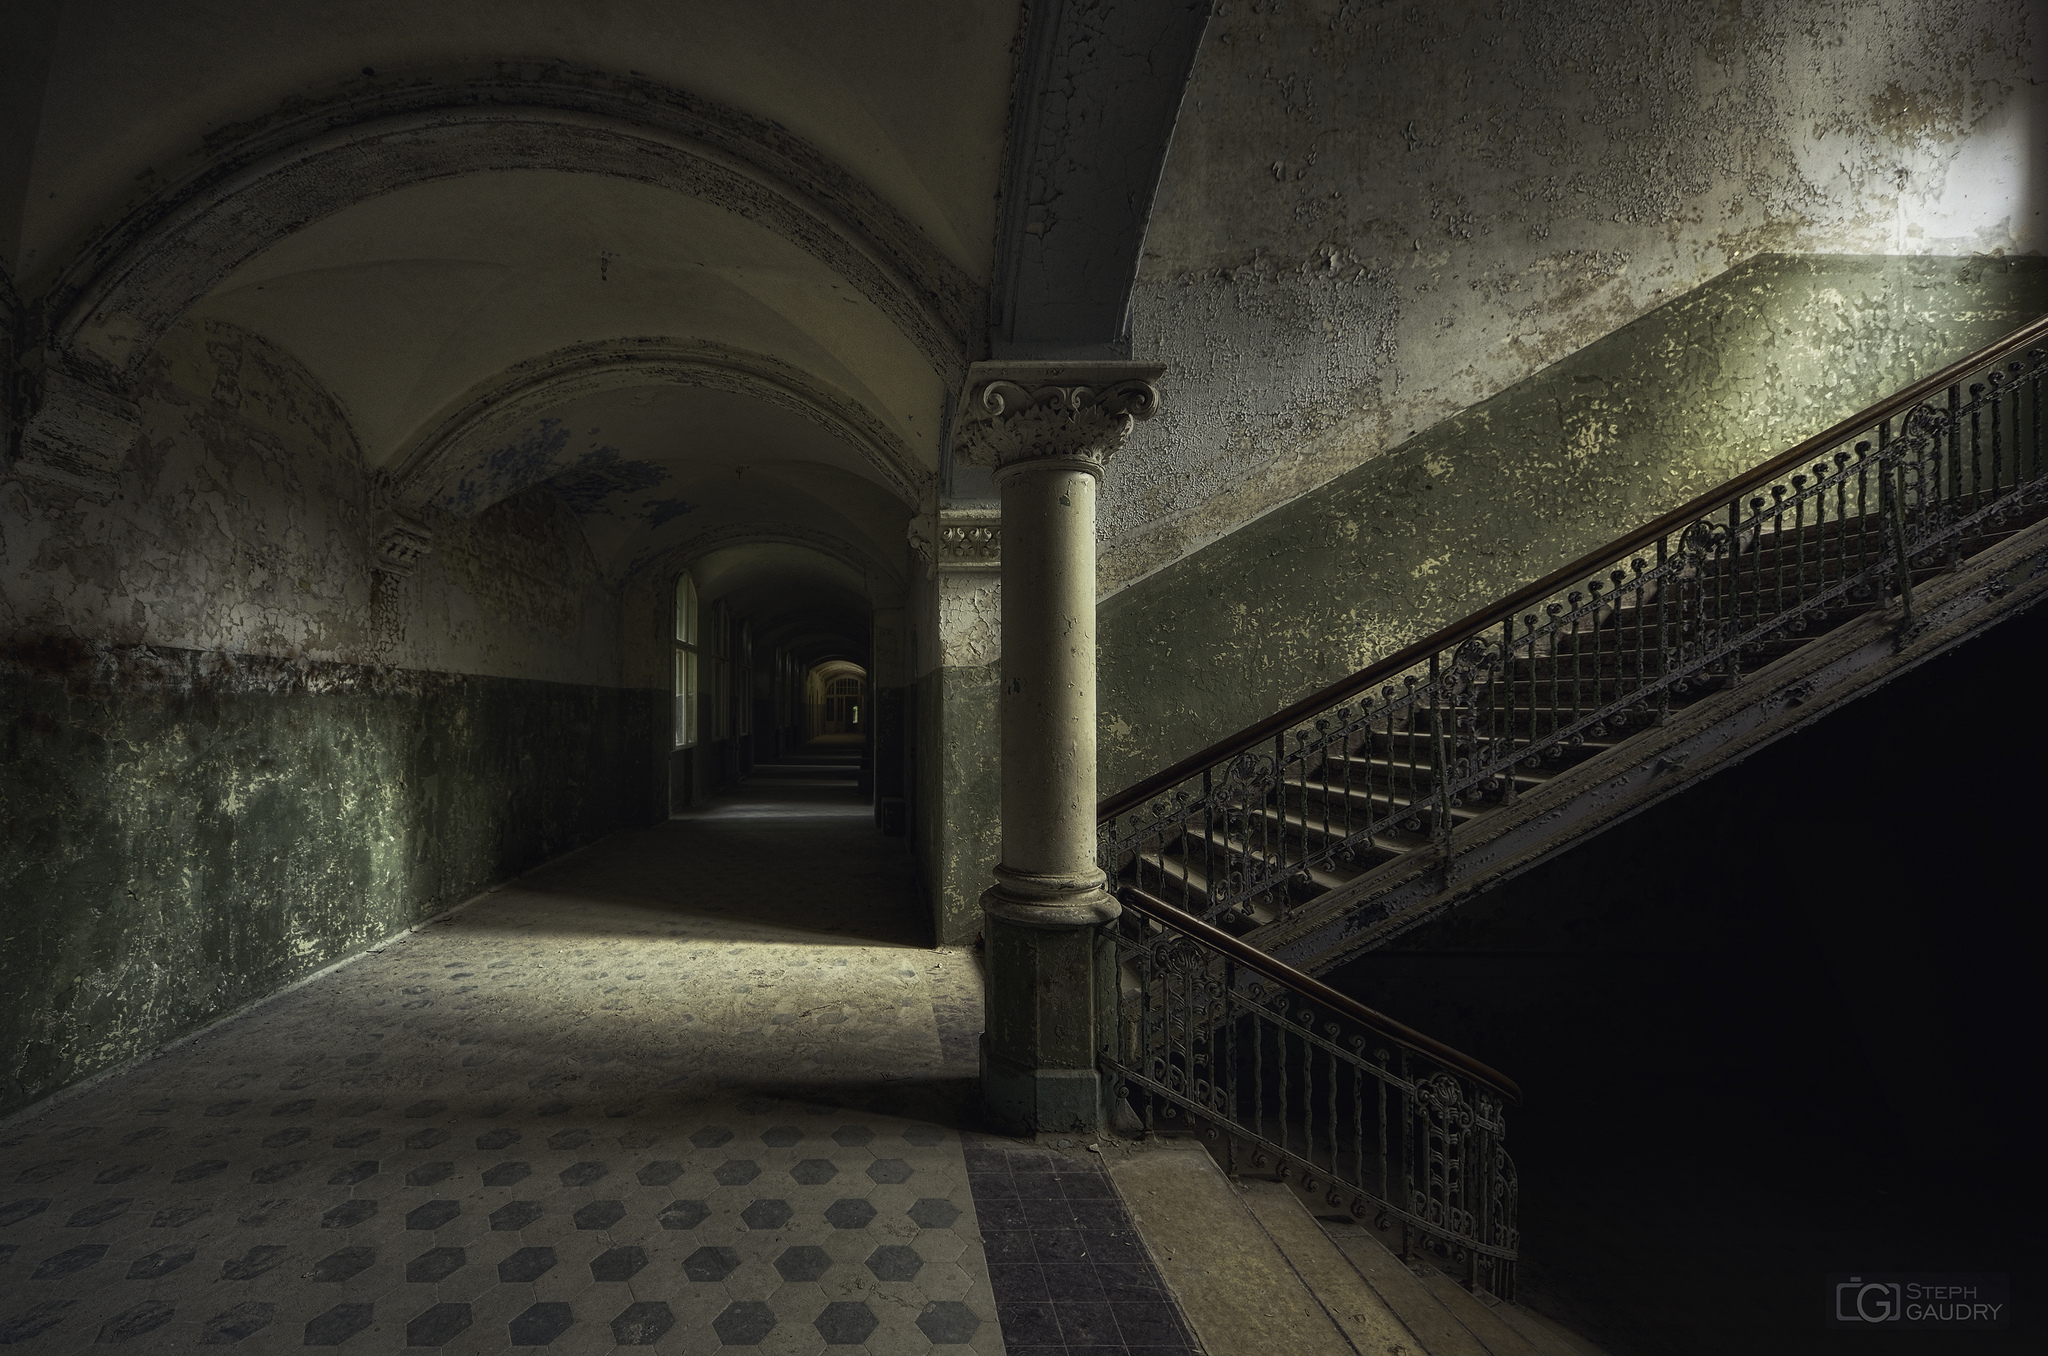 Beelitz, the beauty of decay [Klik om de diavoorstelling te starten]